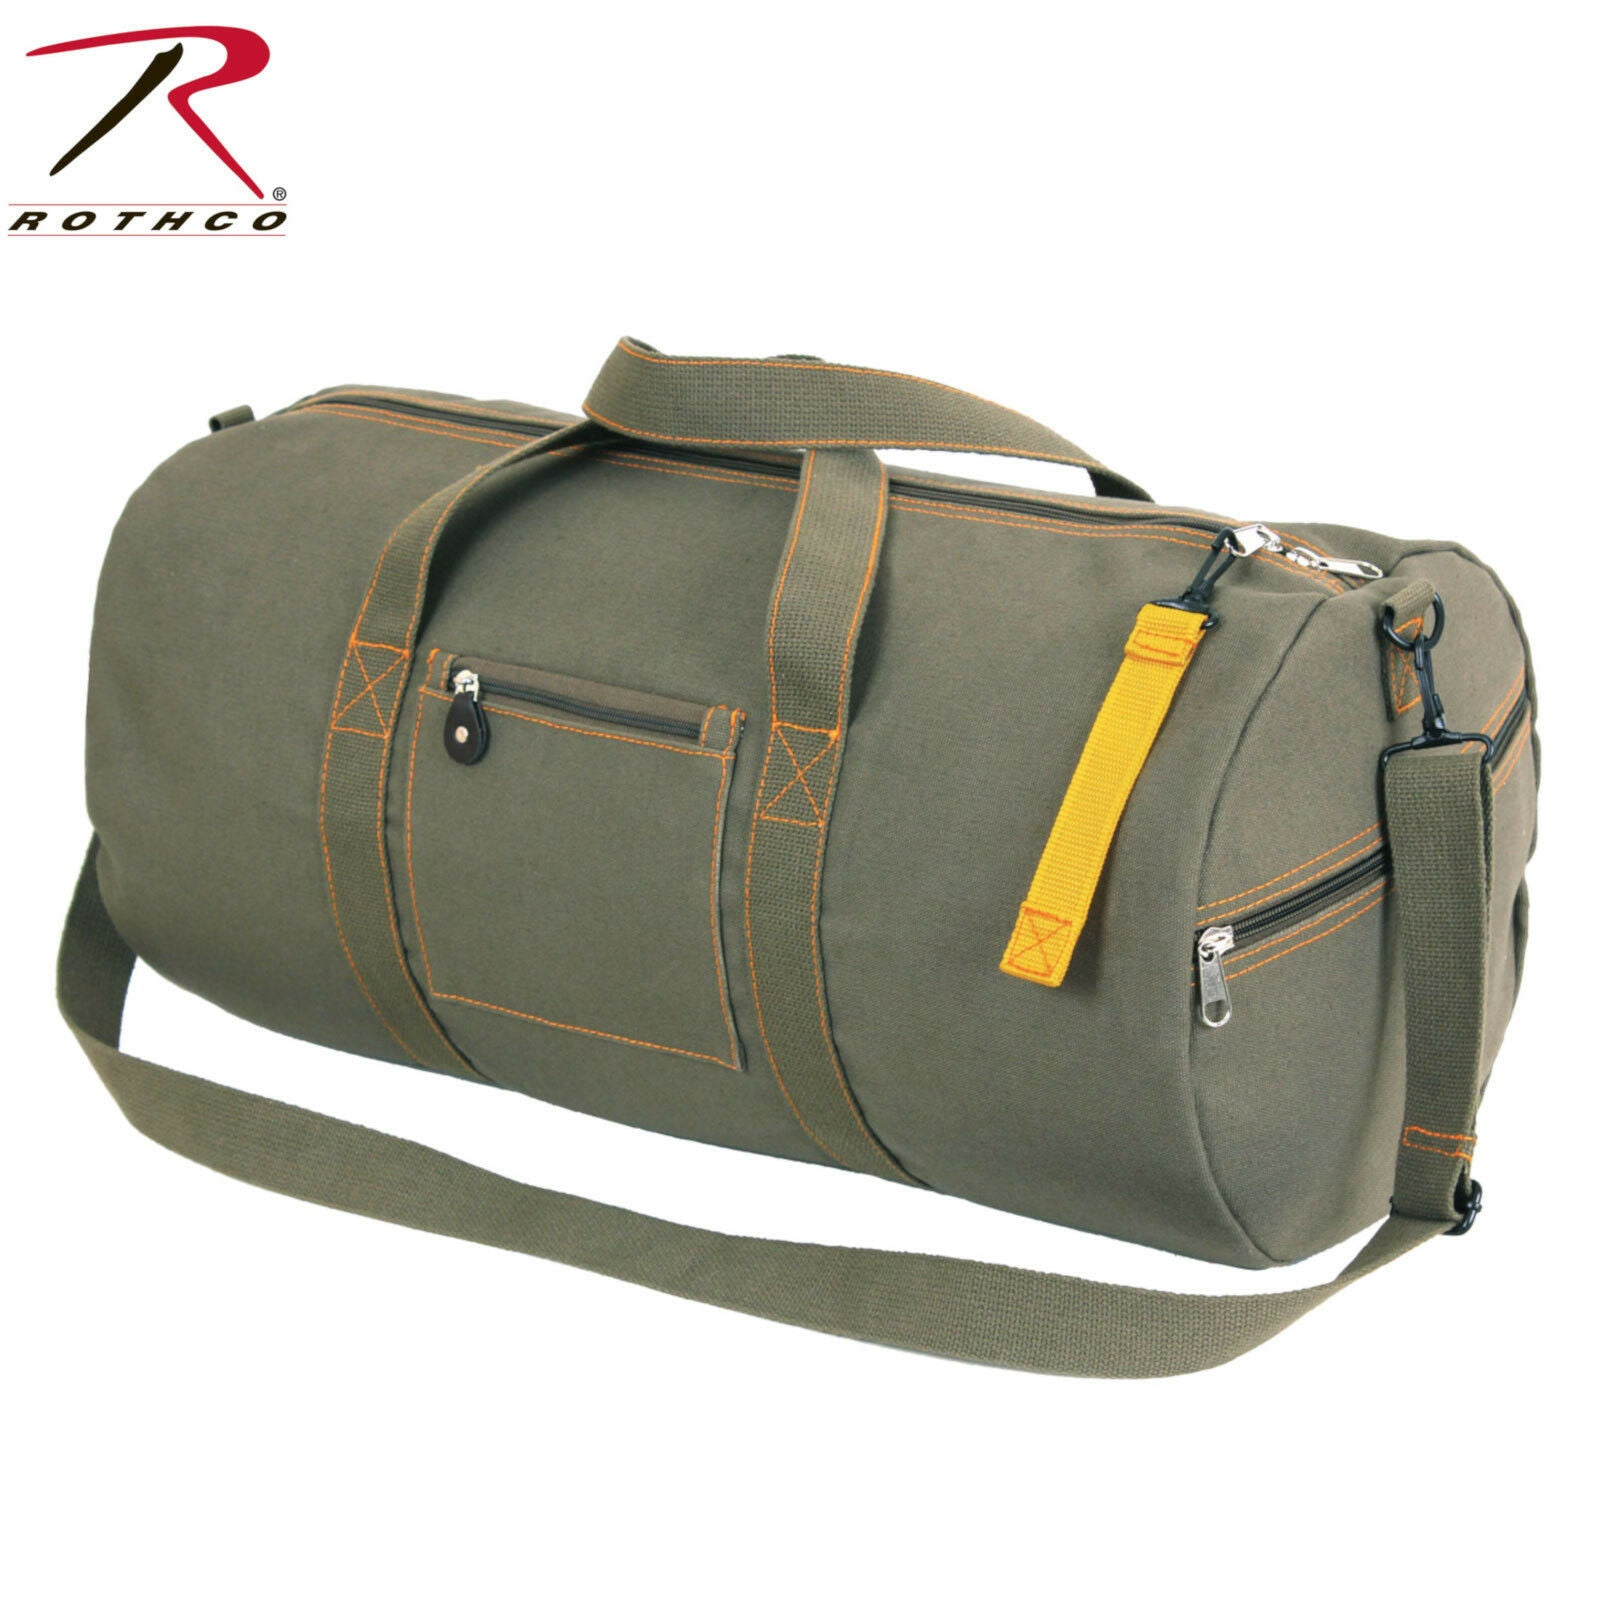 c7709fa28a ... Rothco 24 Inch Canvas Equipment Bag - Olive Drab Shoulder Duffle Gear  Bag